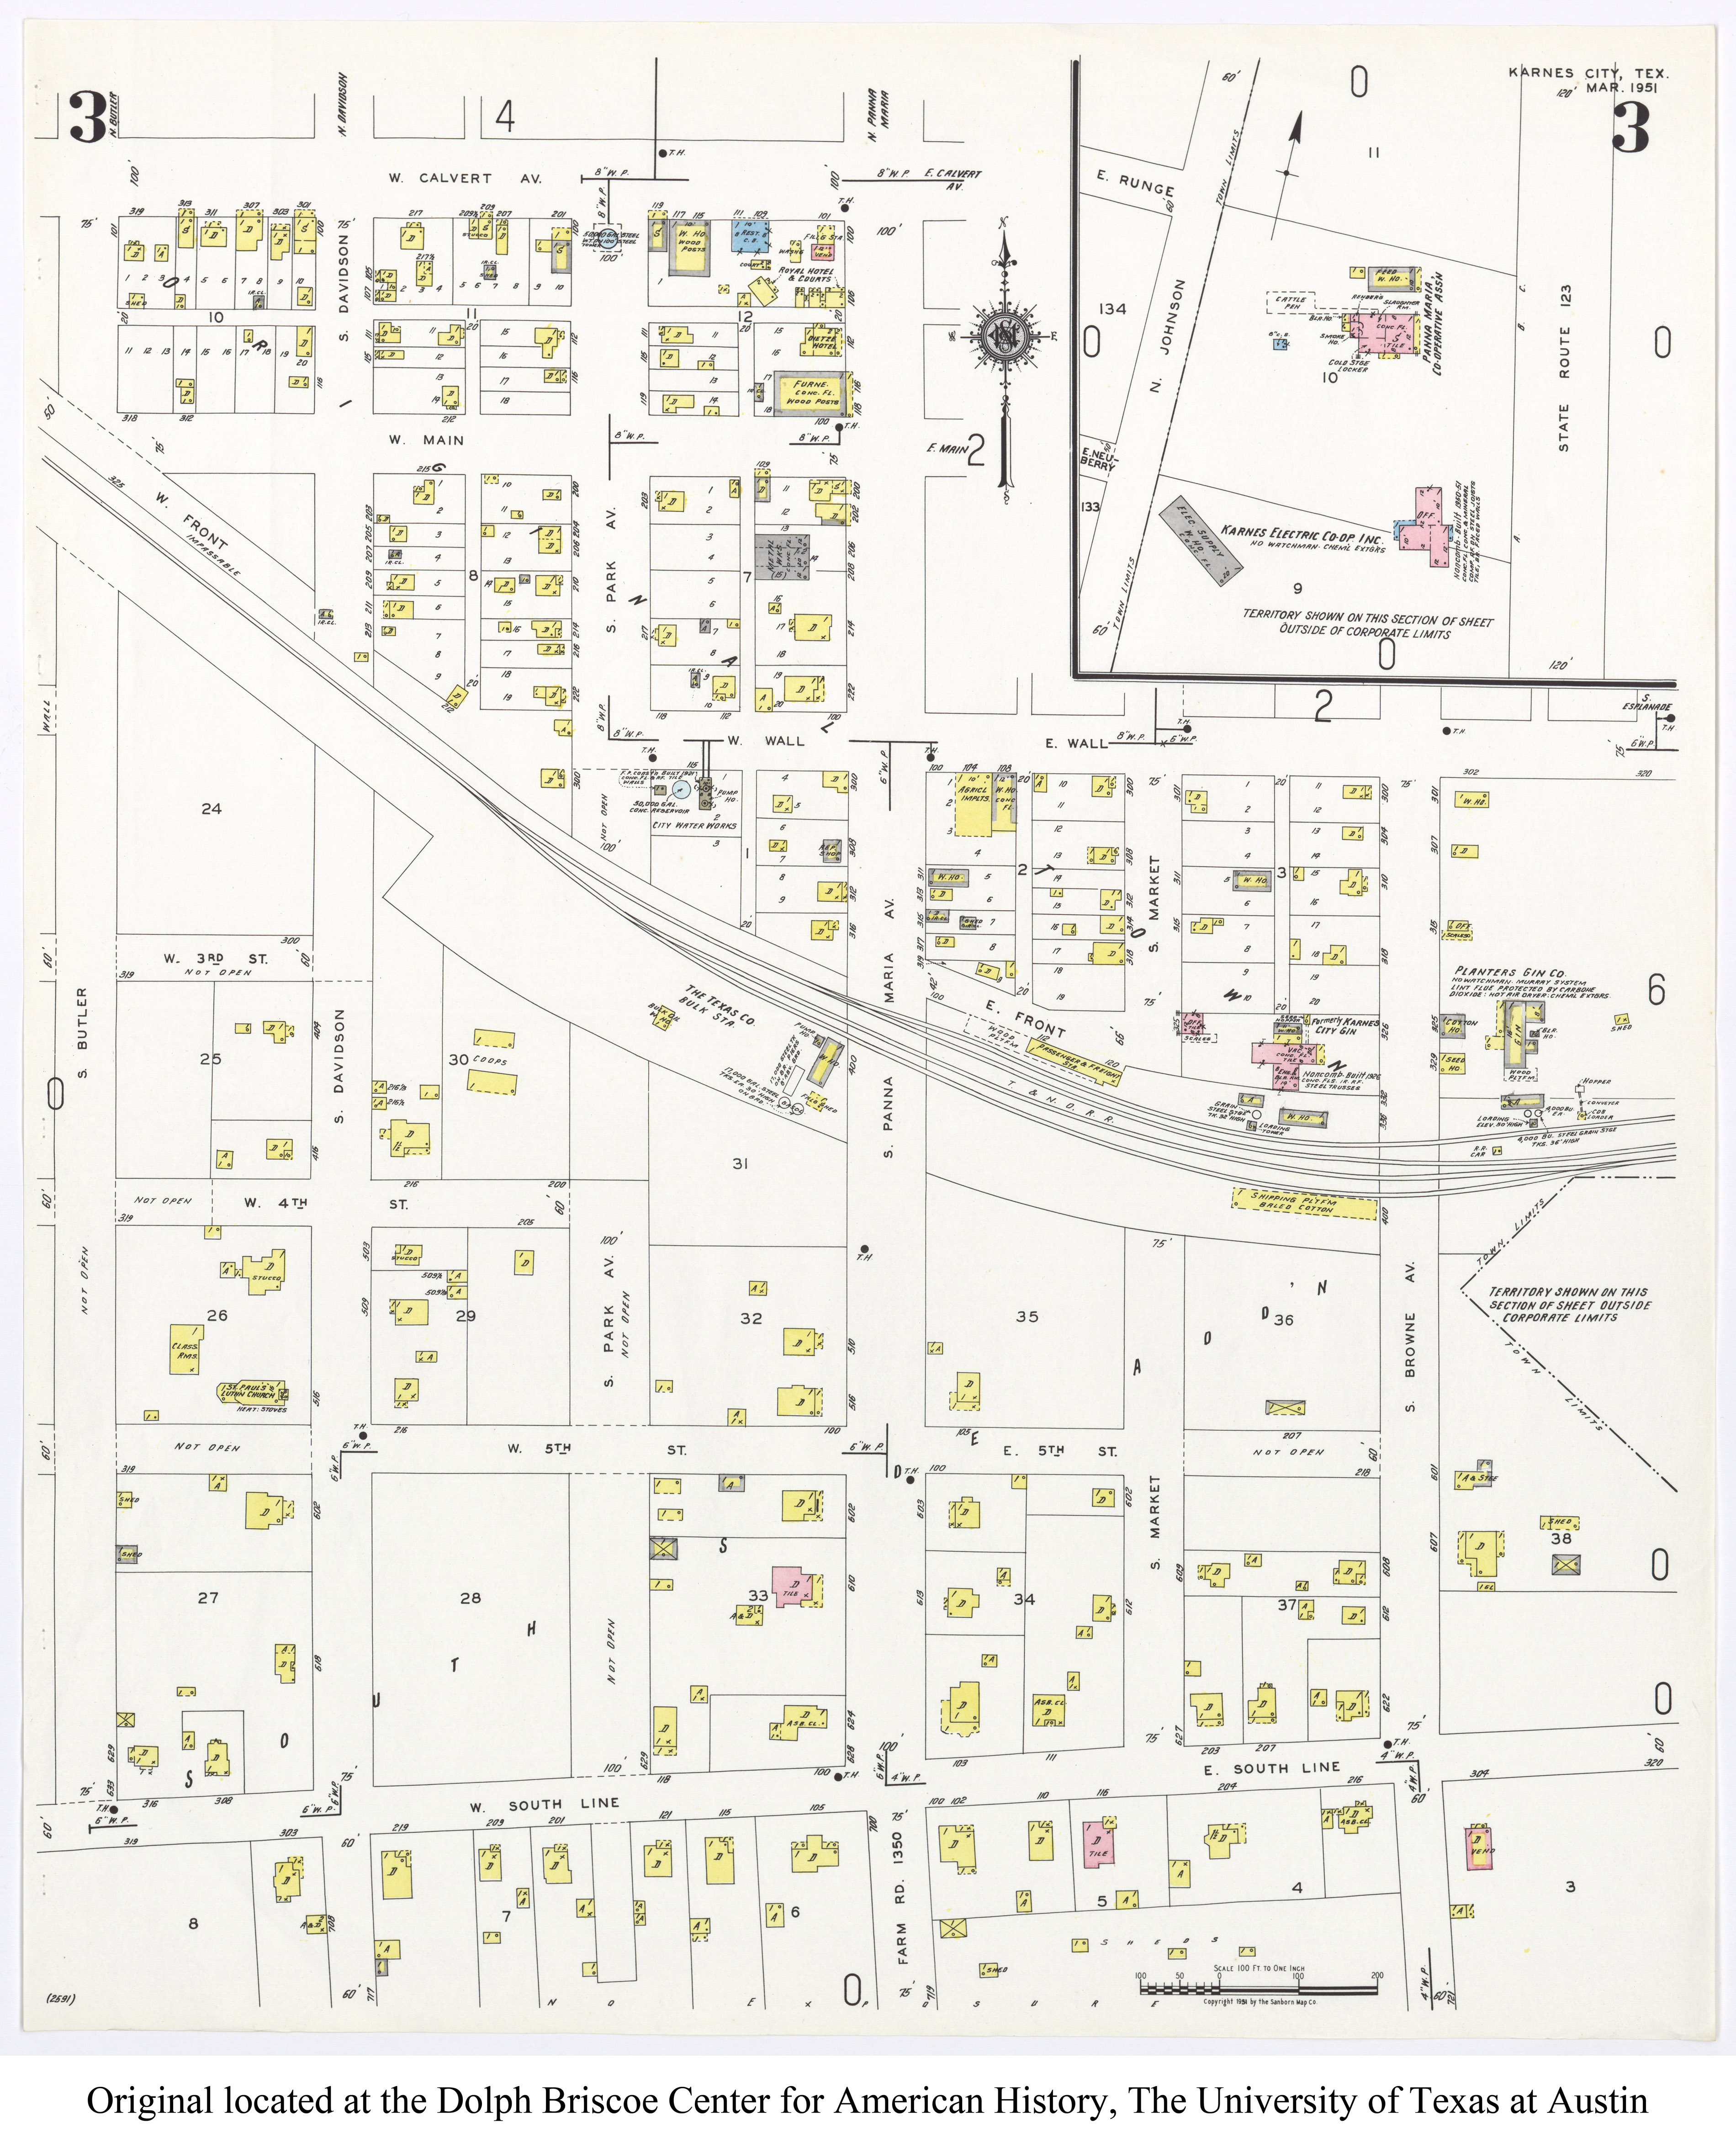 Karnes City Texas Map on pettus tx map, south texas area map, texas cities map, goliad texas map, kenedy texas map, texas hill country road map, yorktown texas map, texas rivers map, runge tx map, texas lakes map, otto tx map, texas counties map,